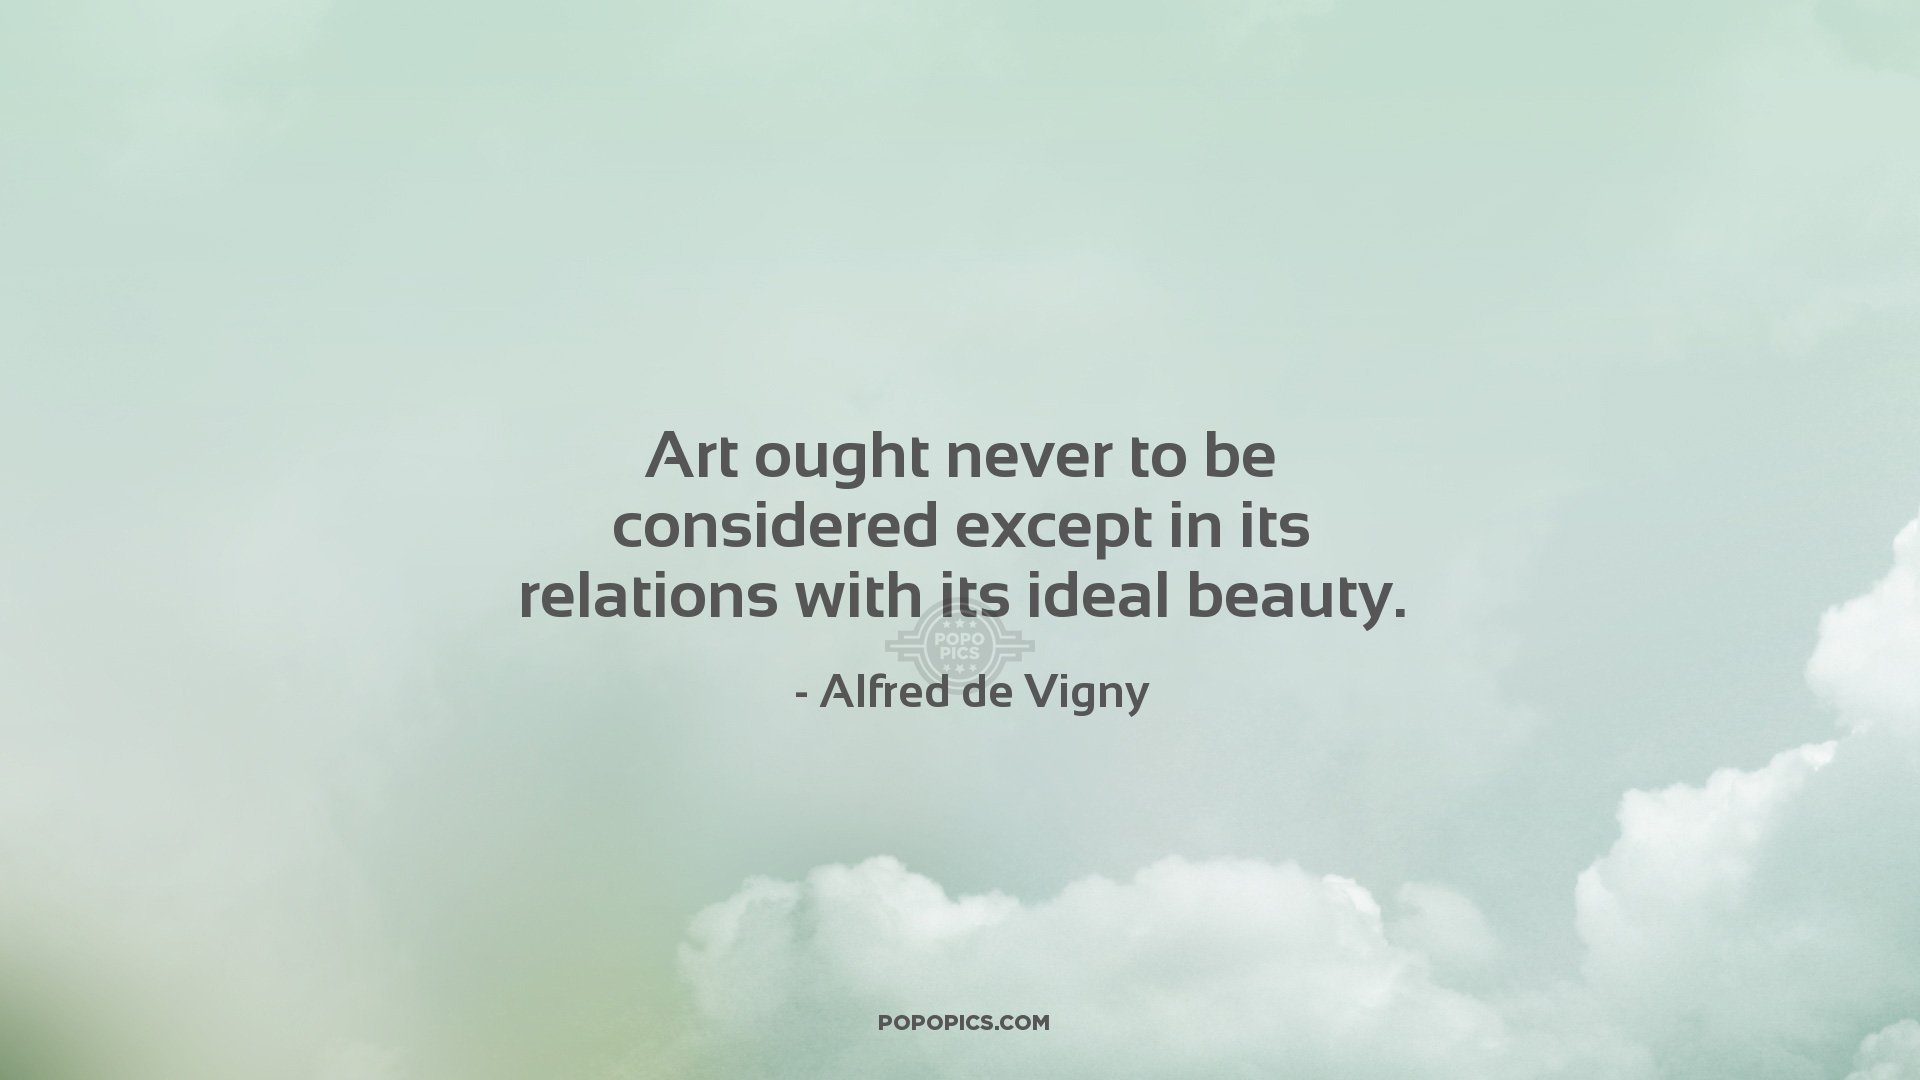 Alfred De Vigny Quotes 44 Wallpapers: Art Ought Never To Be Considered Except In Its...